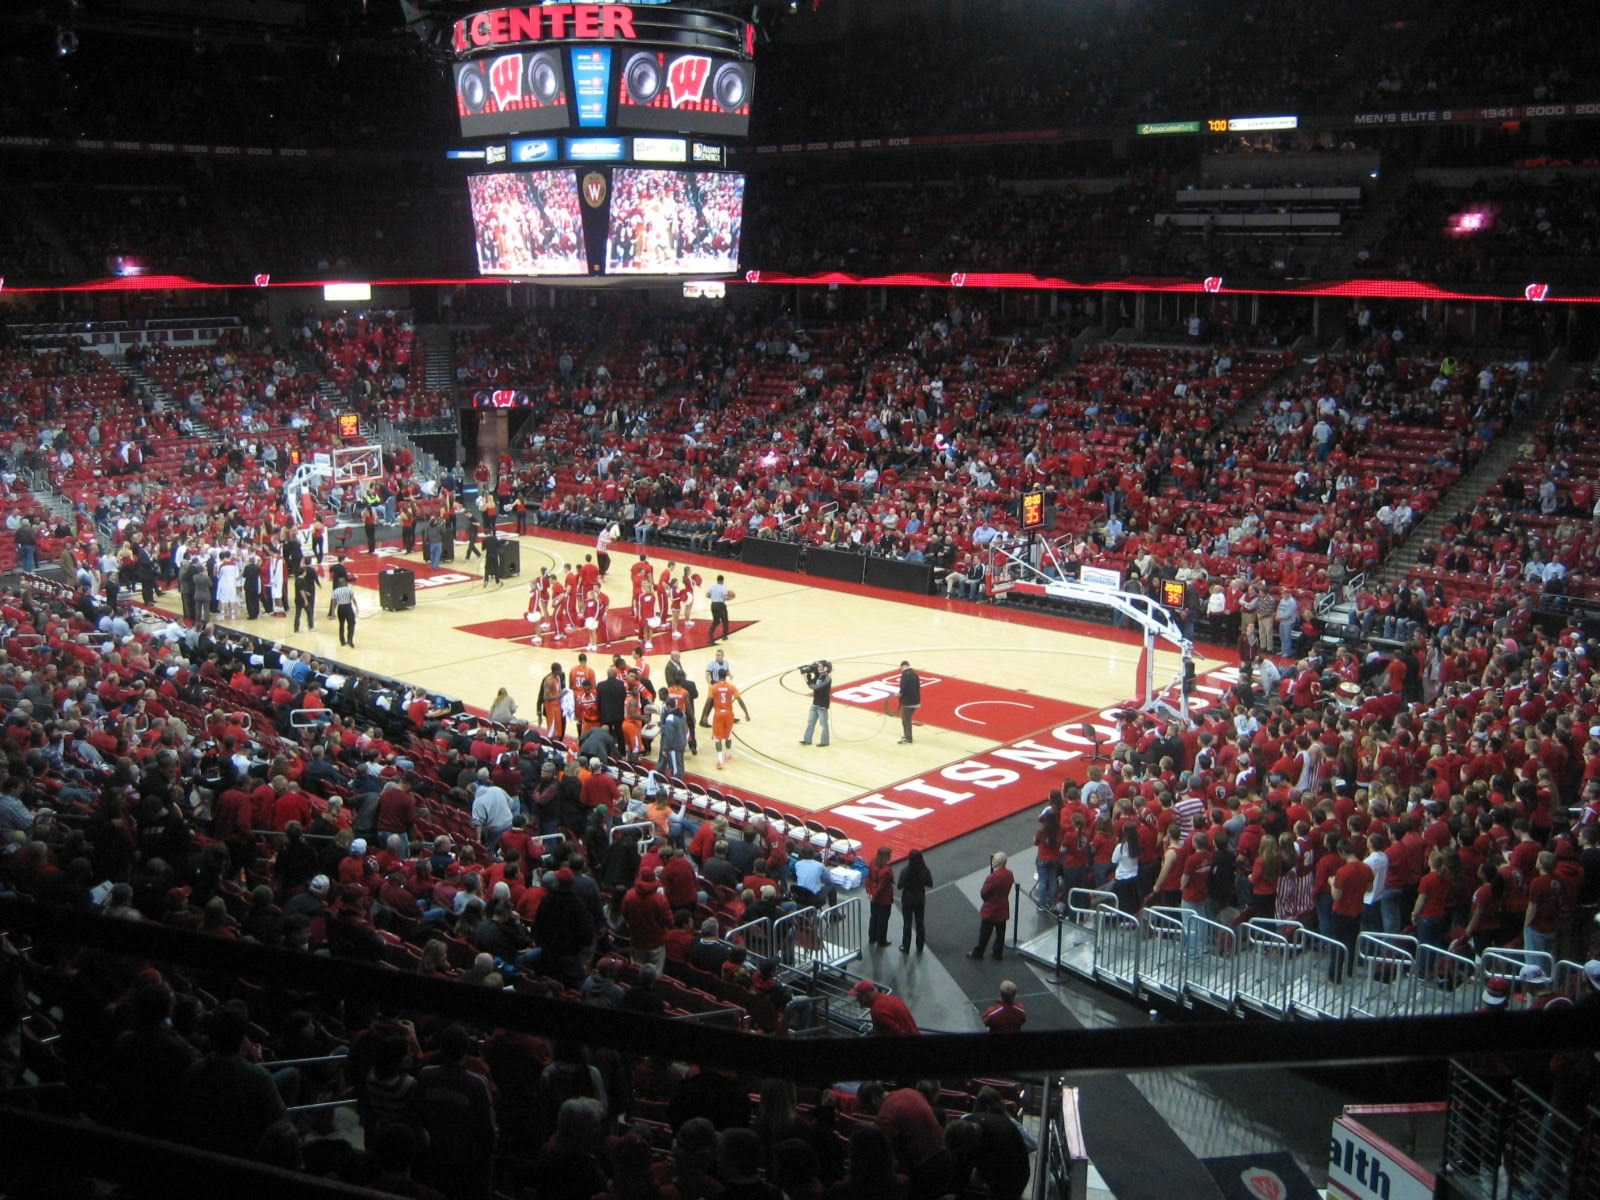 Seat View for Kohl Center Section 217, Row A, Seat 1